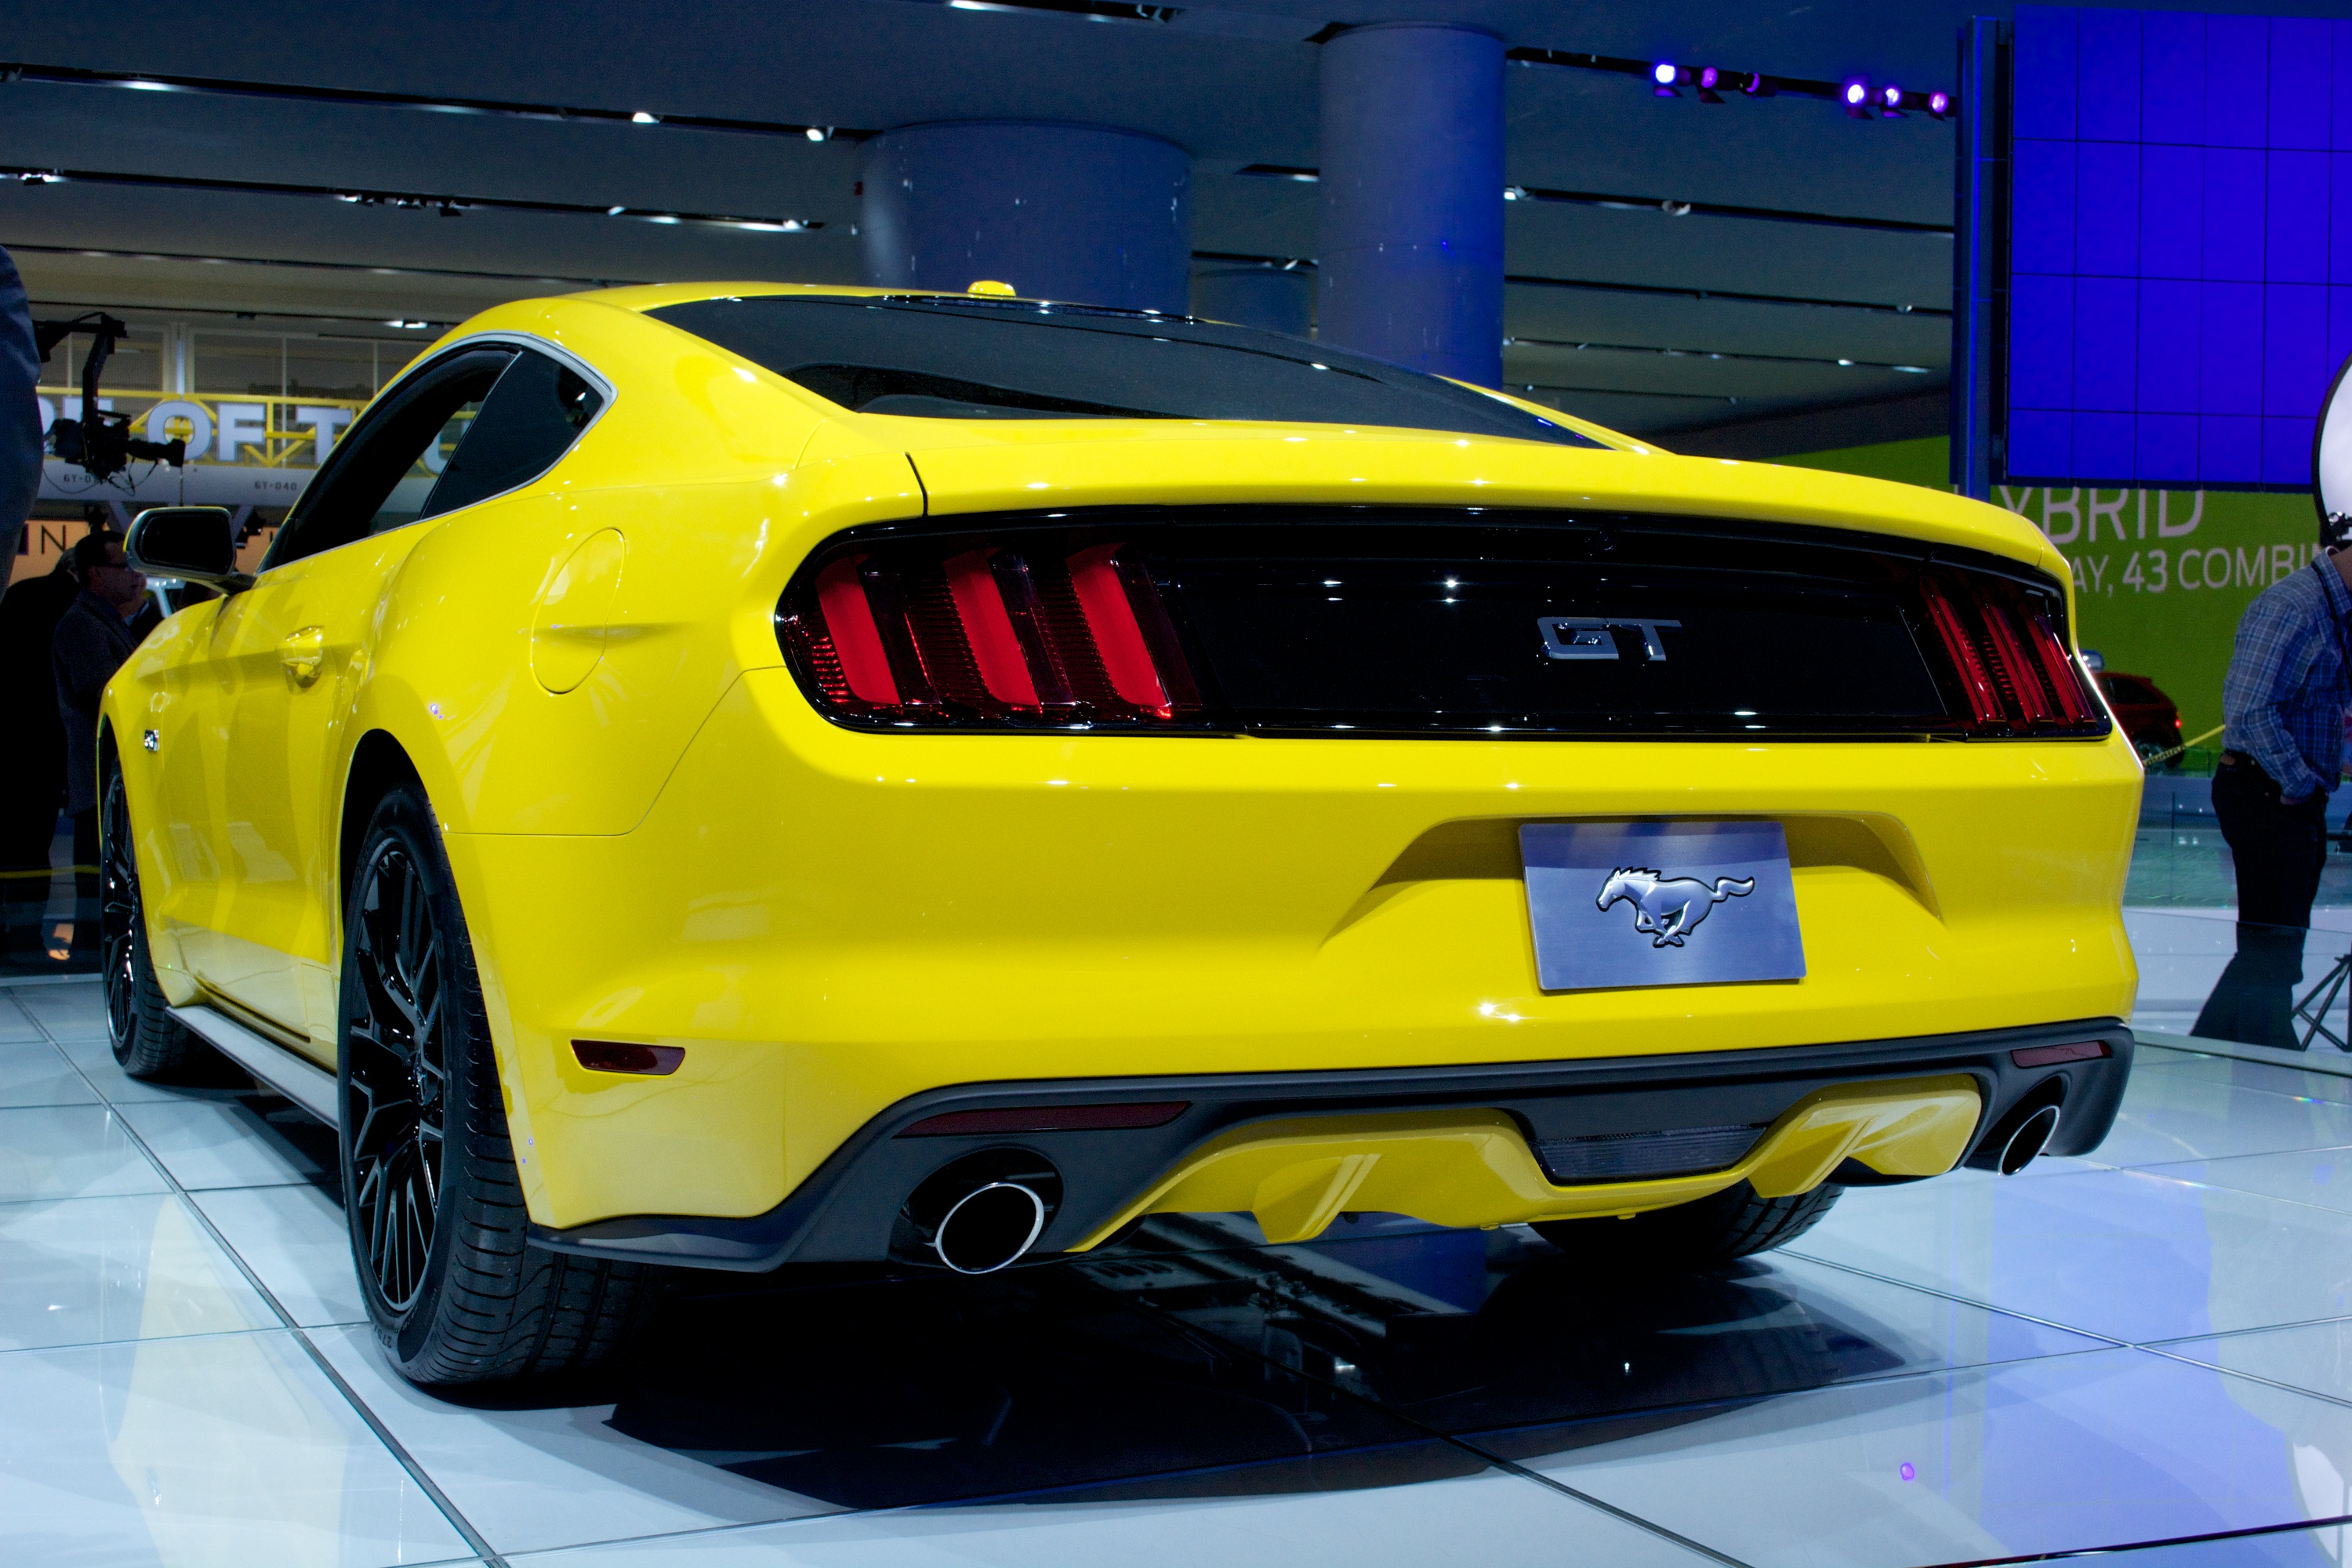 2015 mustang discounts: how to score big - motor review